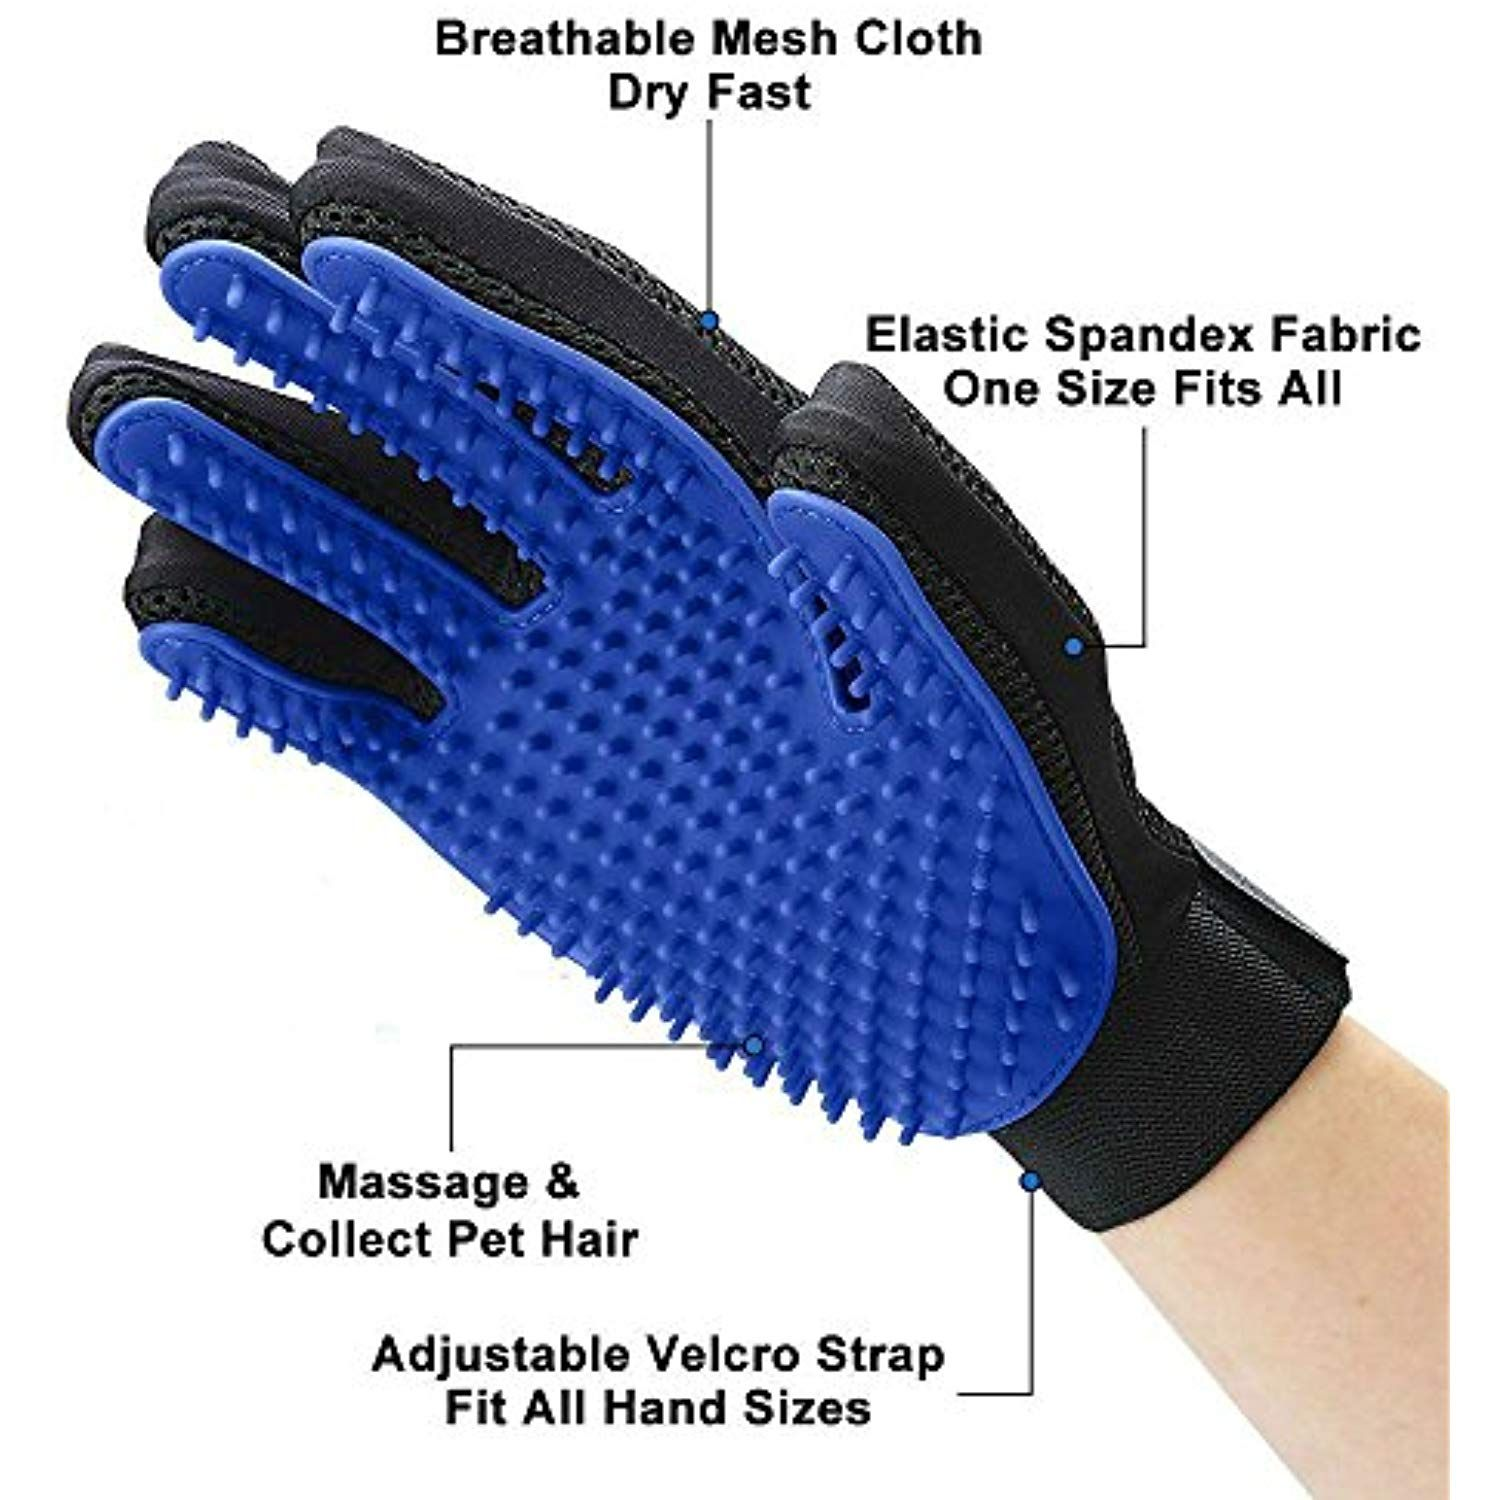 Shed No More (Premium Version) Grooming Glove Soft and